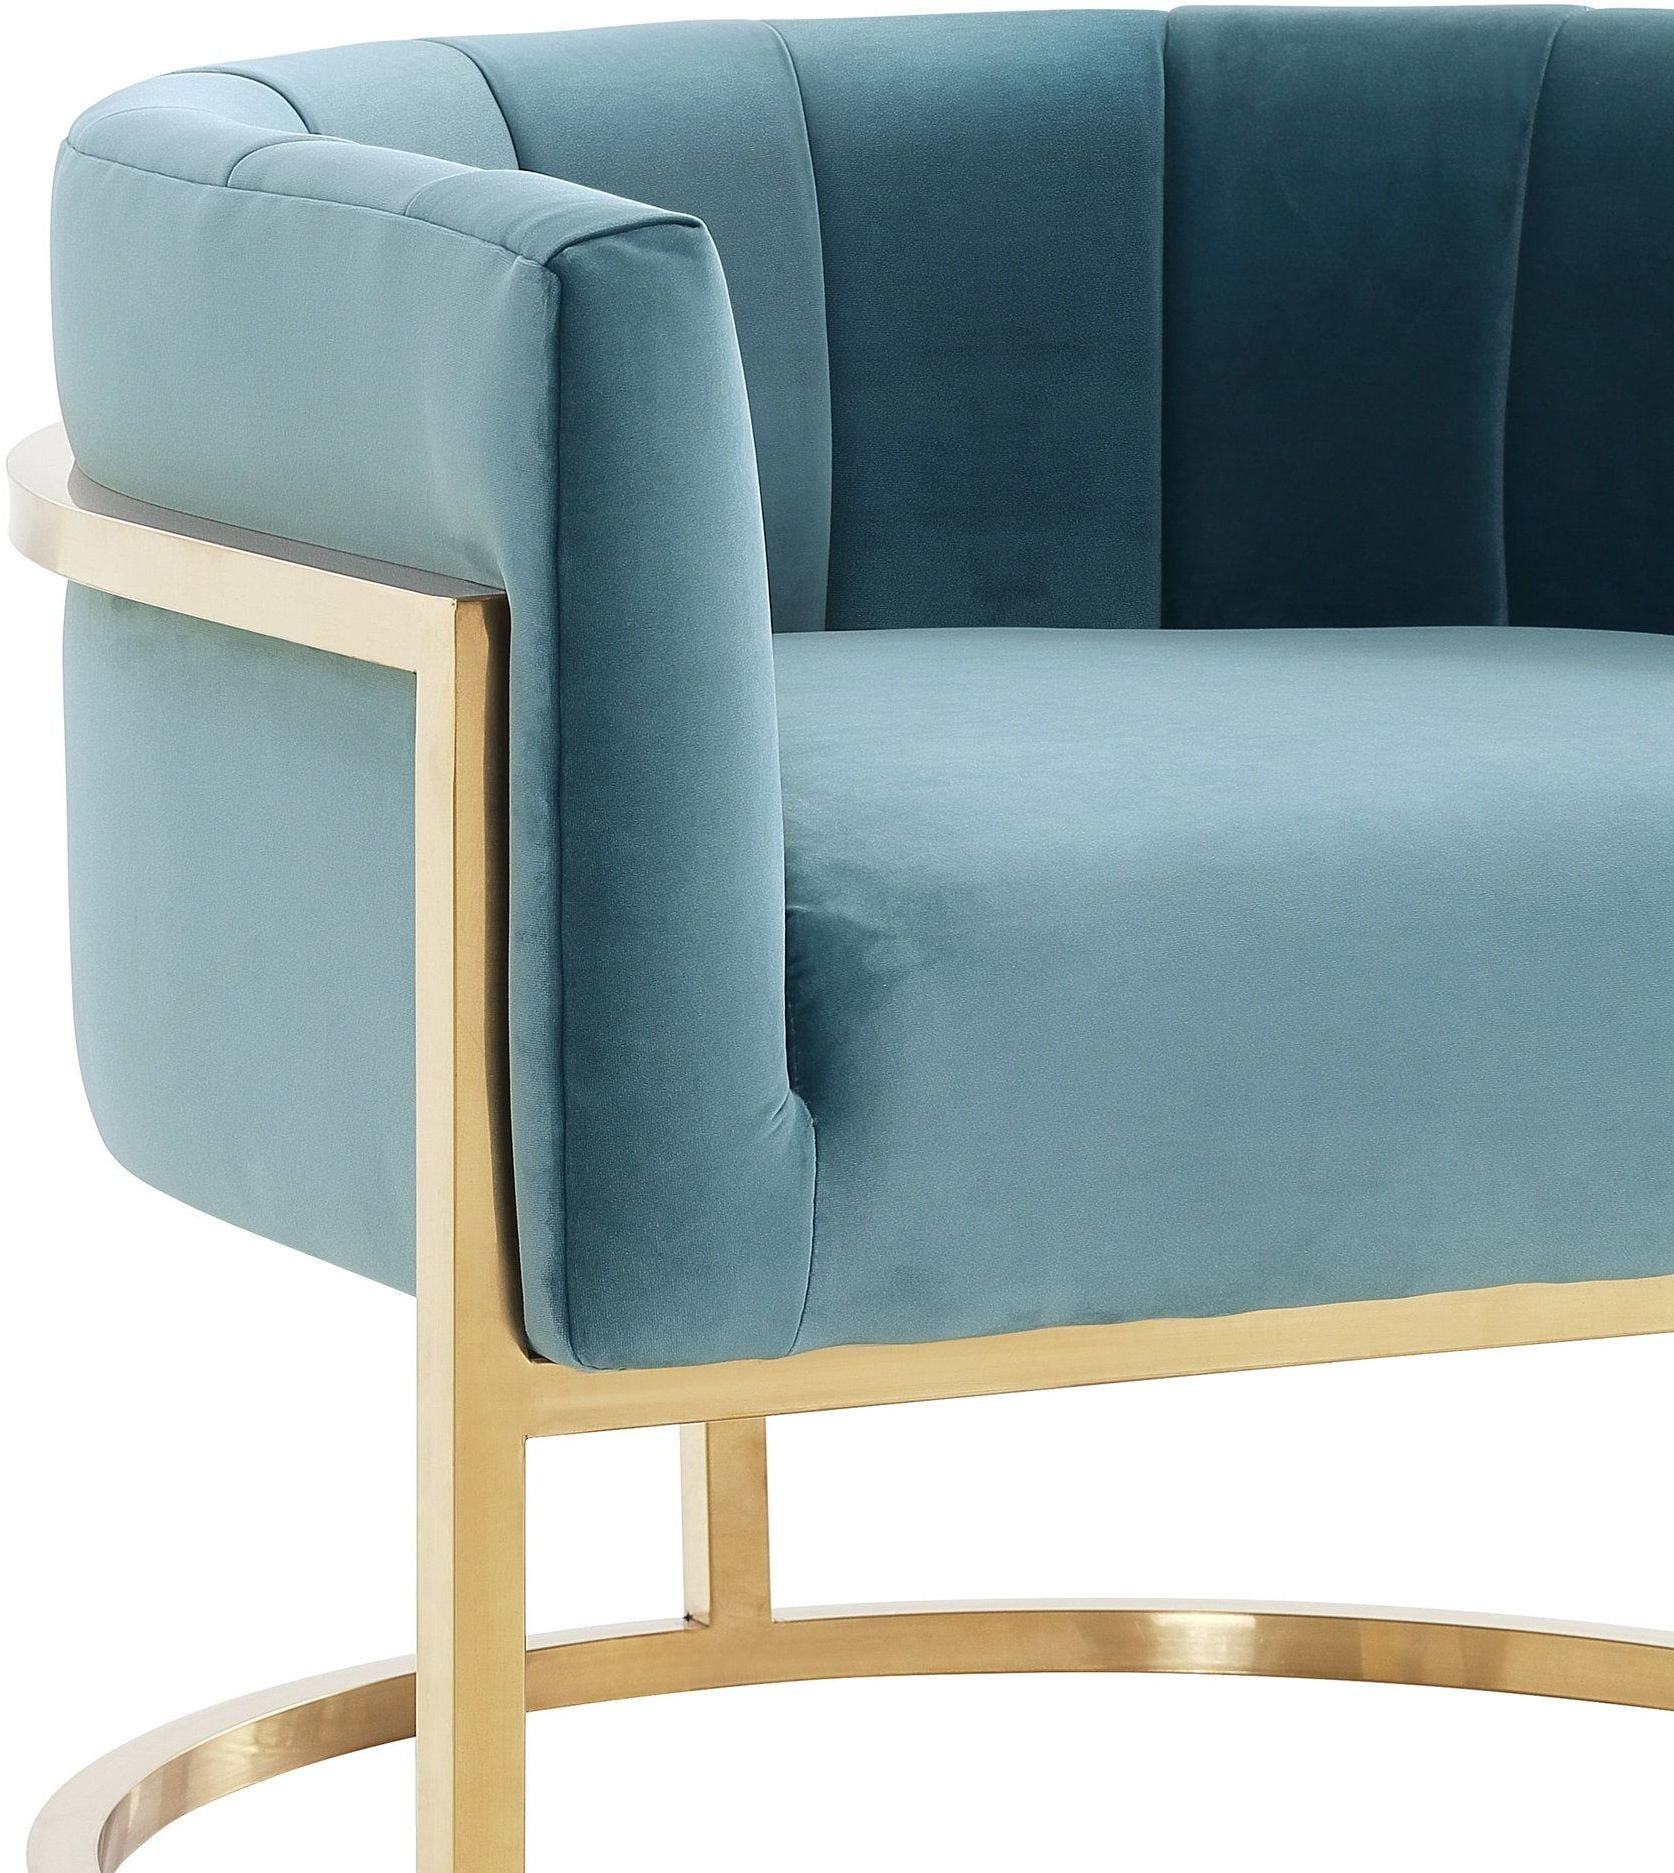 Magnolia Sea Blue and Gold Chair from TOV